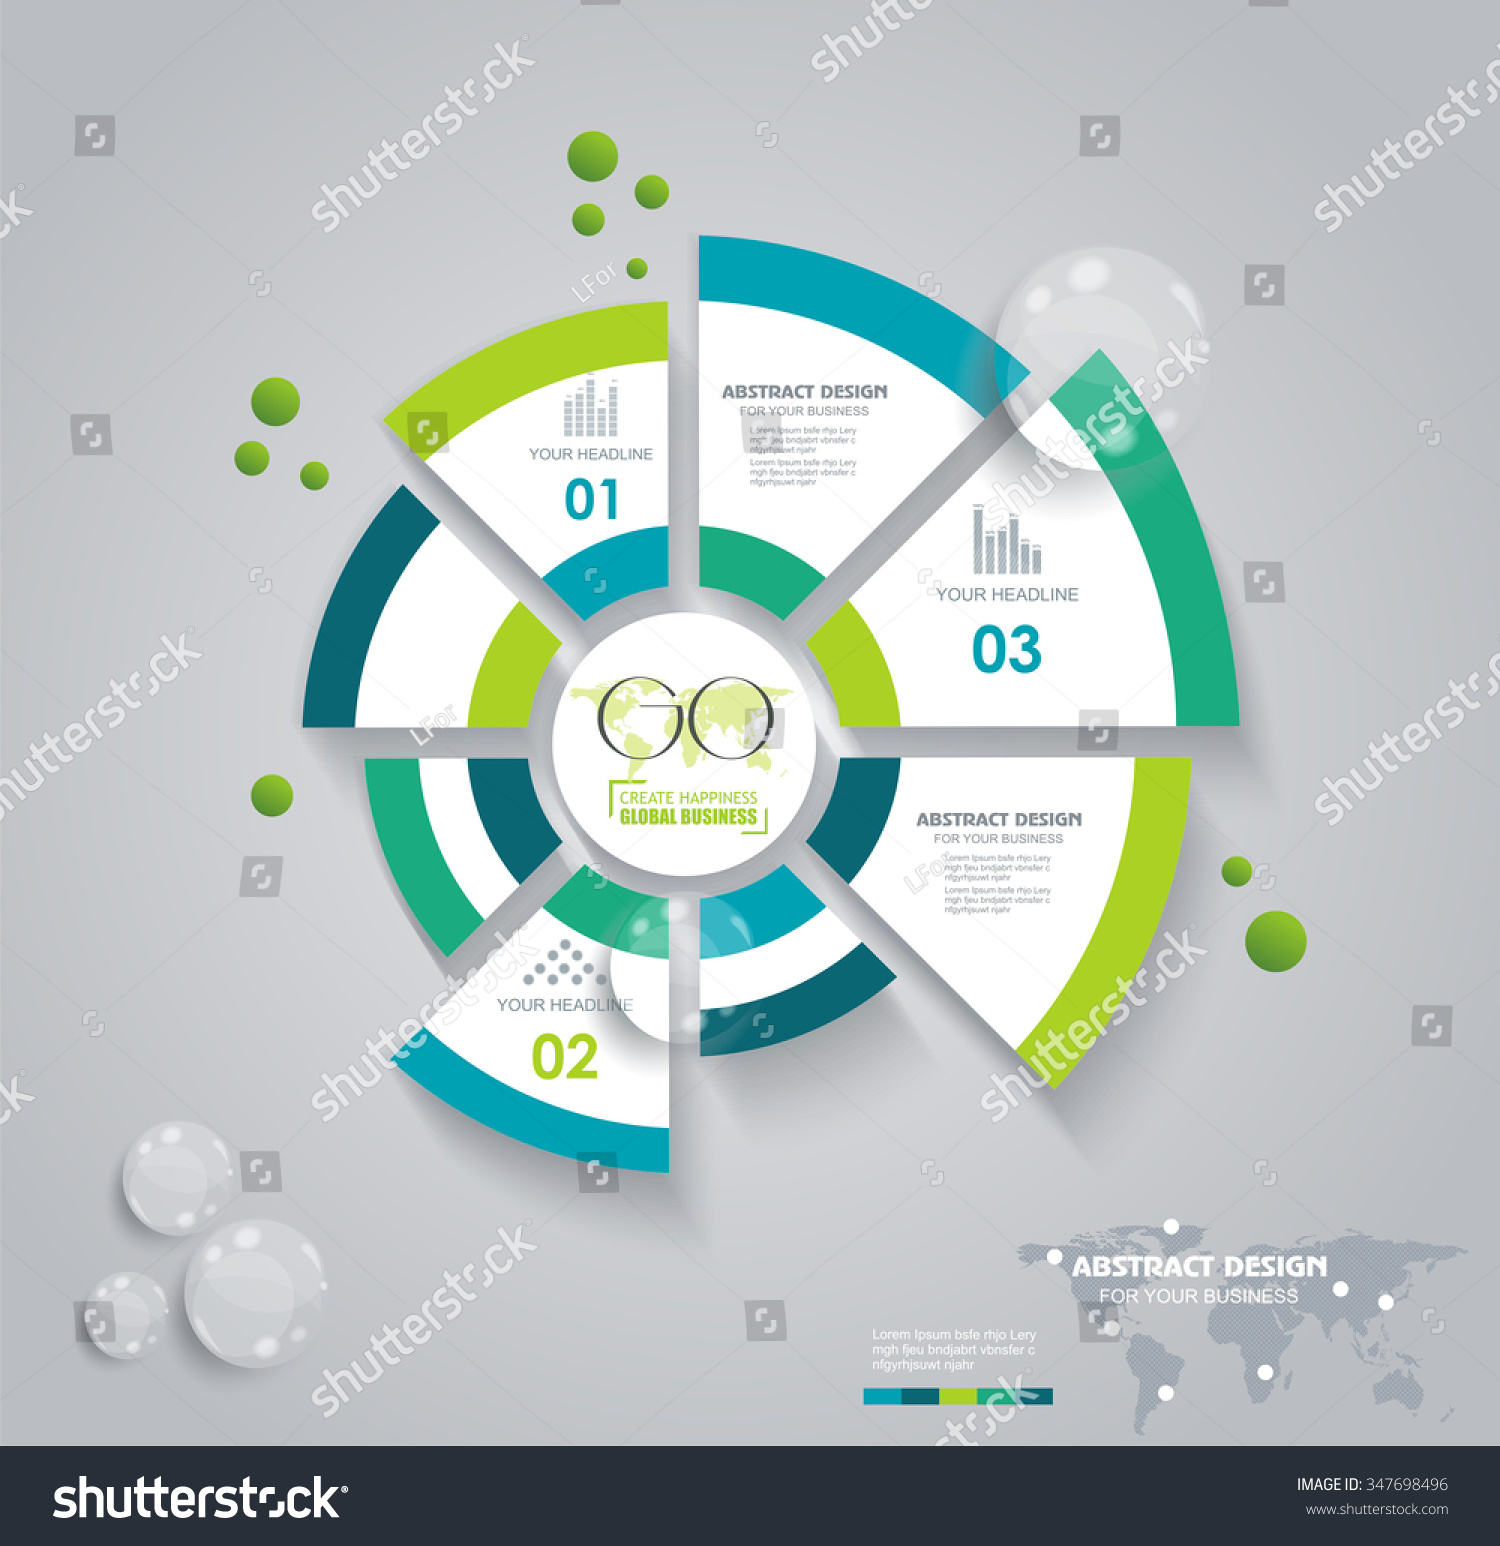 Business pie chart documents reports documents stock vector business pie chart for documents and reports for documents reports graph infographic nvjuhfo Gallery